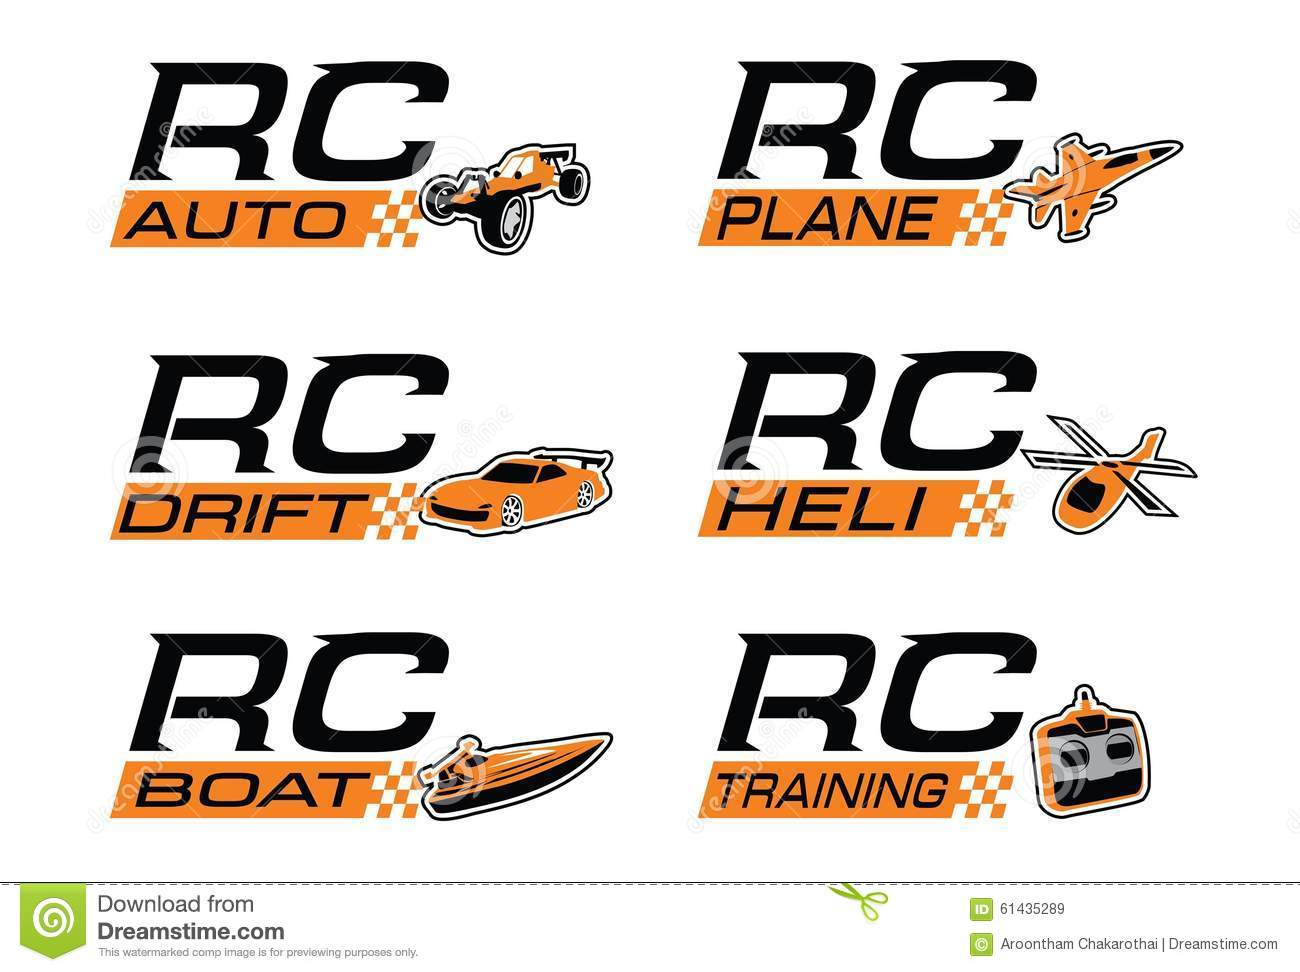 remote control drift with Stock Illustration Rc Icon Set Radio Control Collection Use As Logo Hobby Training Group Image61435289 on Stock Illustration Rc Icon Set Radio Control Collection Use As Logo Hobby Training Group Image61435289 in addition P535124 furthermore 1098226 lotus F1 Team Creates Awesome Mad Max Homage F1 Car besides Hpi Goes Nitro With Latest Ken Block Car further Rc Submarines.